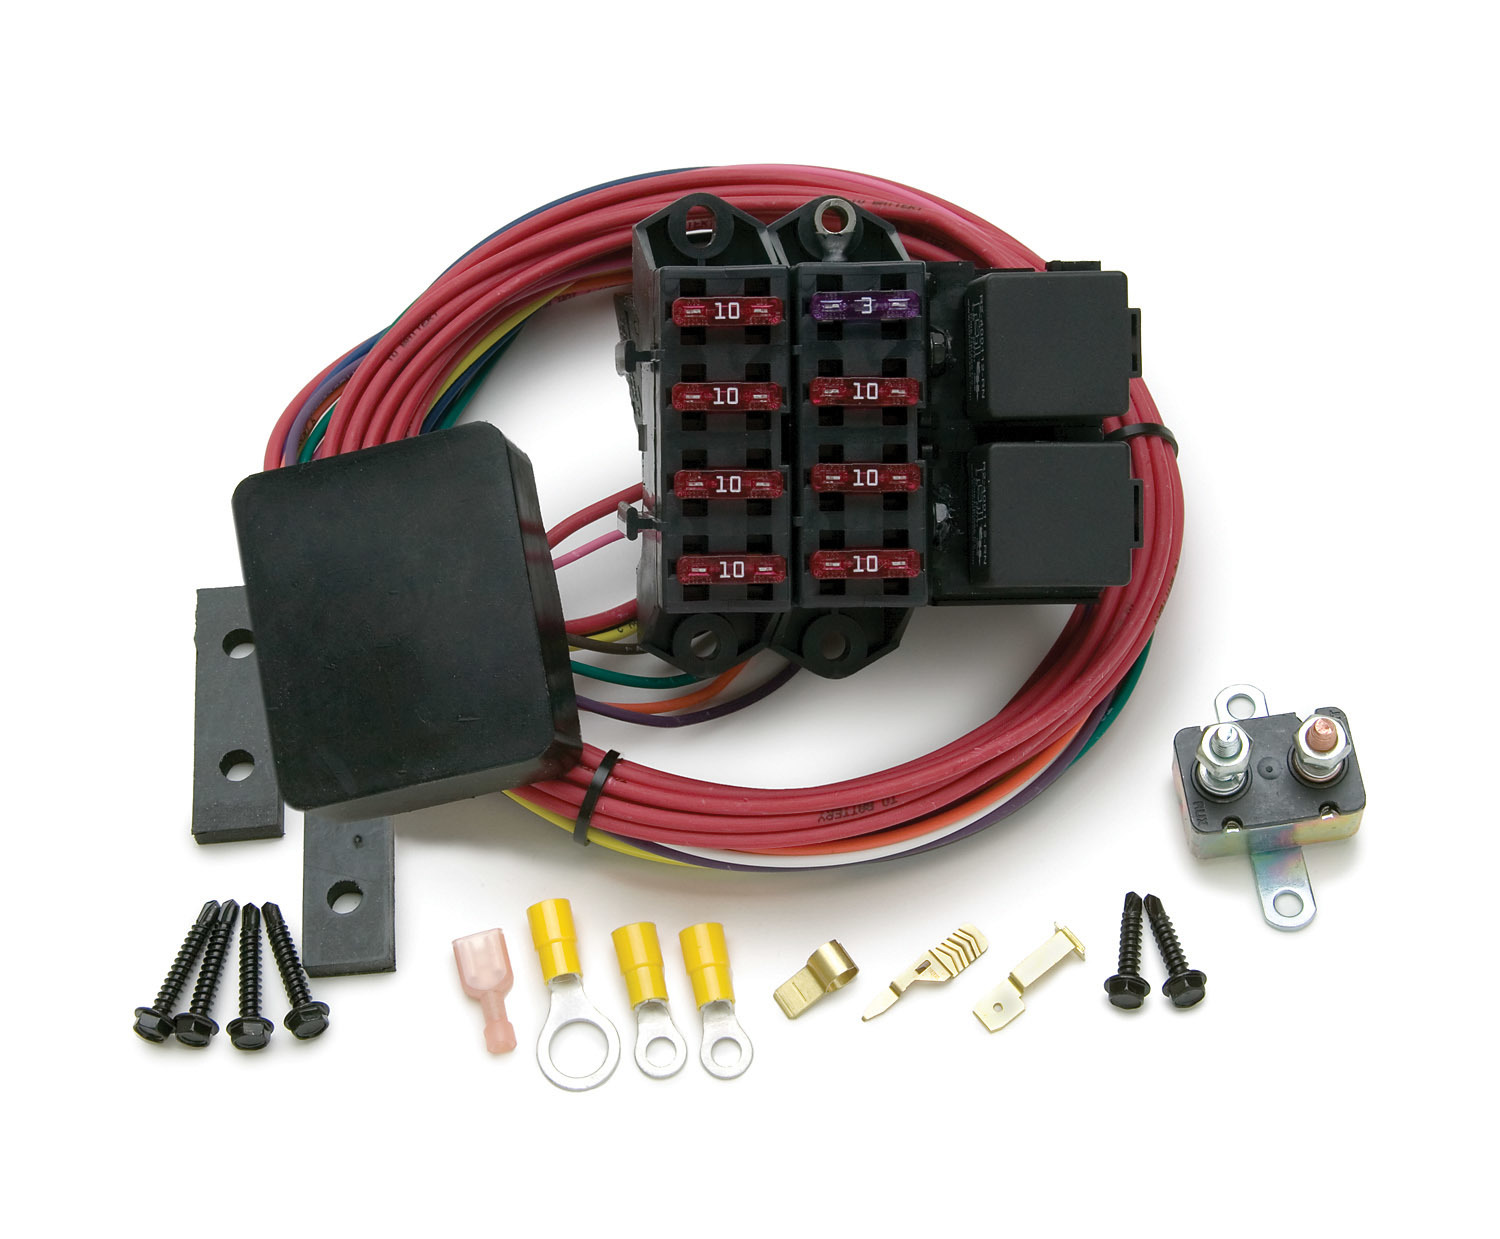 Painless Wiring 70217 Fuse Block, Auxiliary, 7 Circuit, Weather Resistant, Harness / Relay, Universal, Each